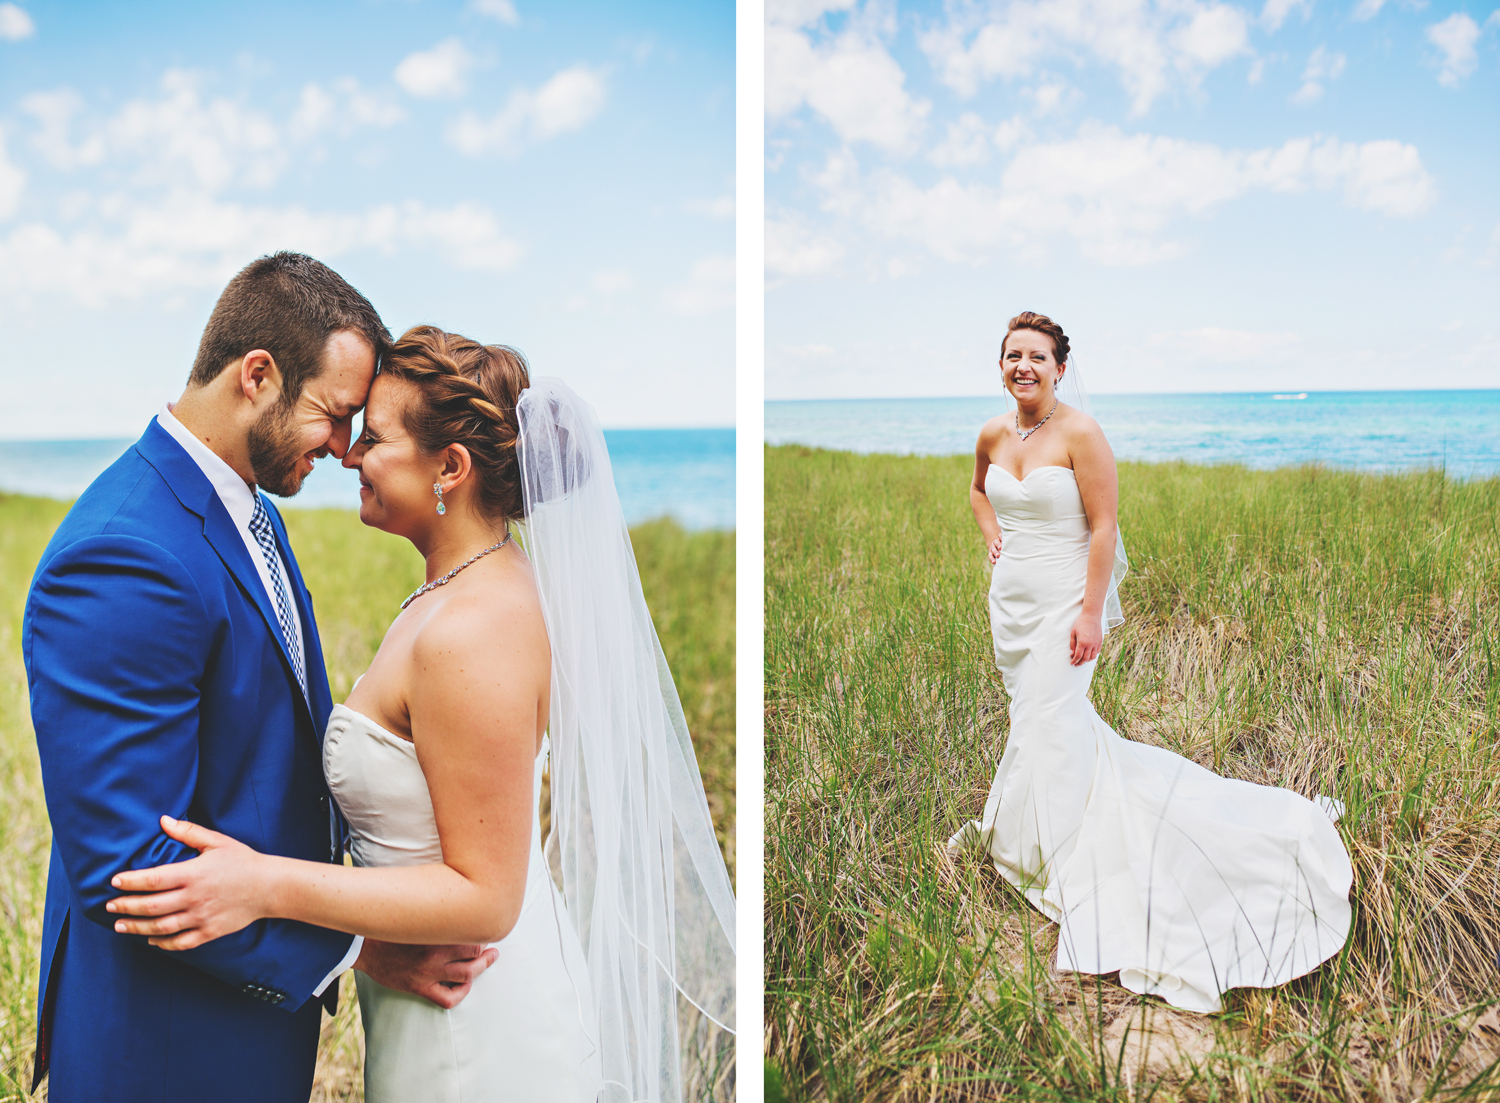 michigan_vineyard_wedding_photographer_davetree_photography_308.jpg